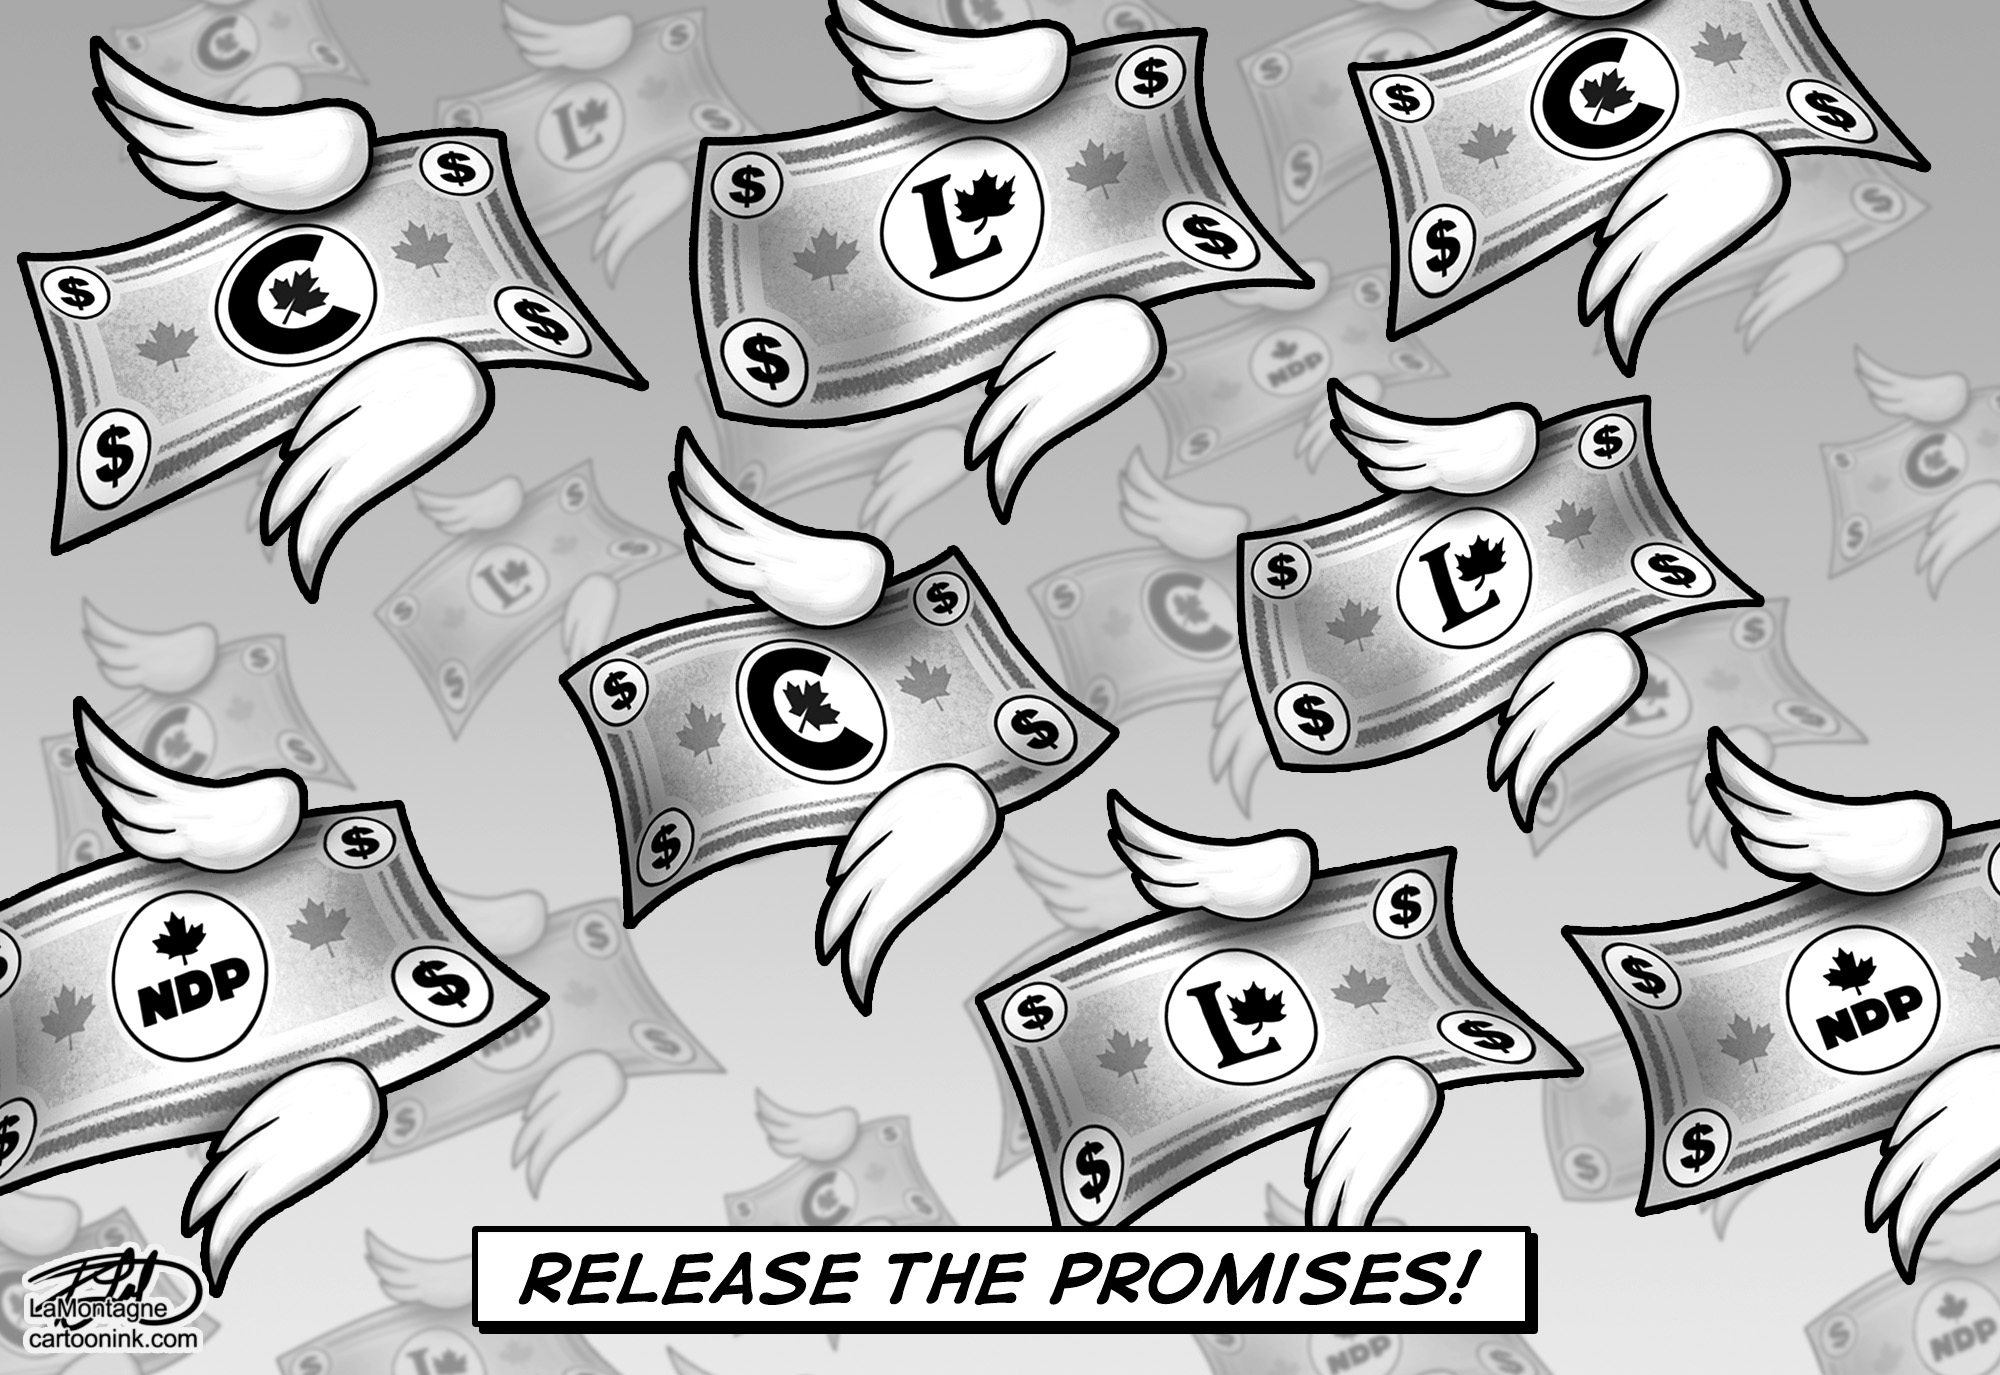 Release the Promises!